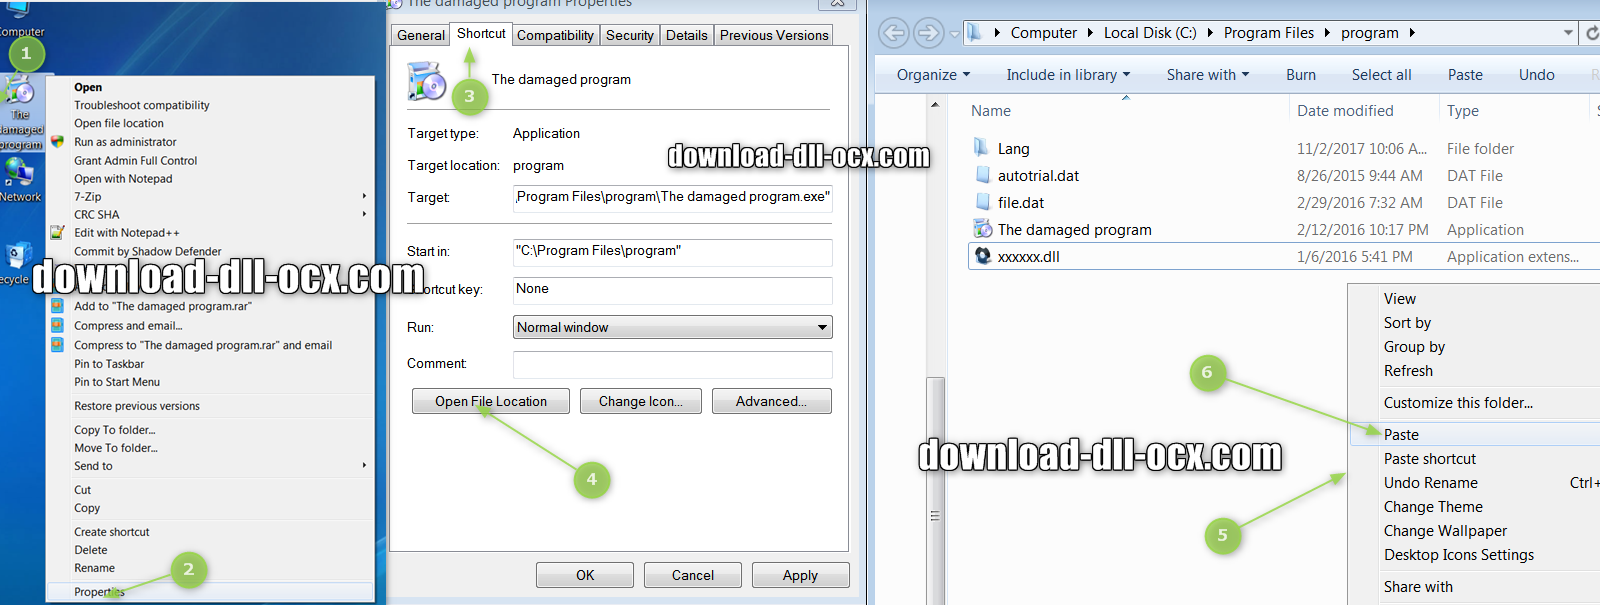 how to install GrConv.dll file? for fix missing